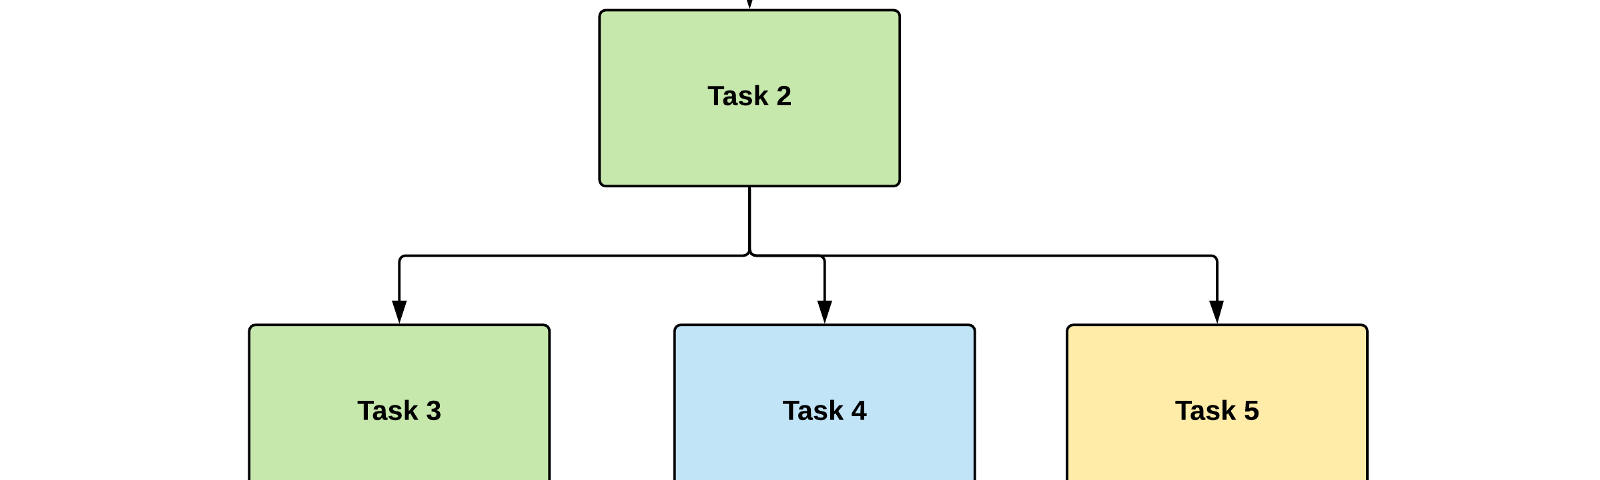 An example visual diagram with the individual tasks of the project represented as their own rectangle.